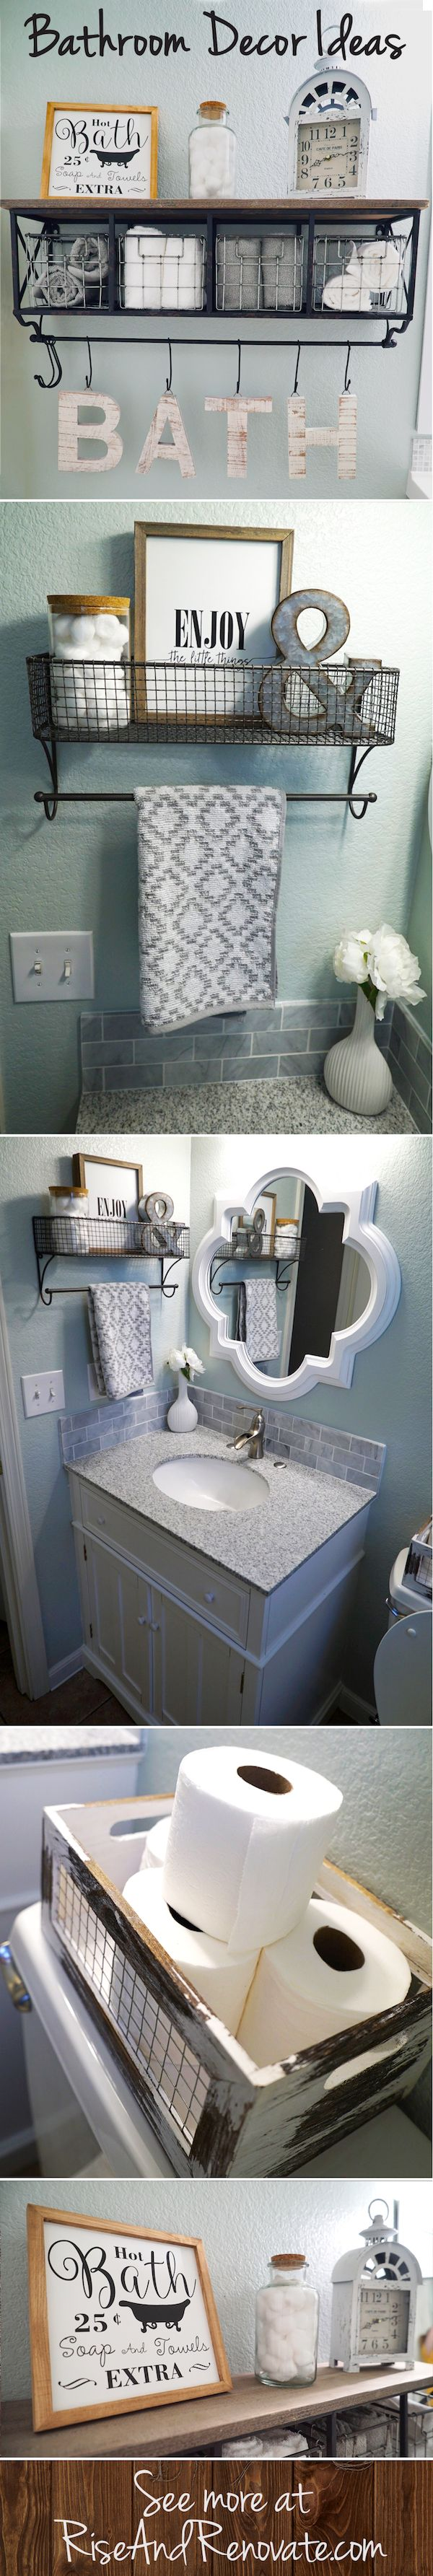 17 best ideas about paint bathroom vanities on pinterest | painted